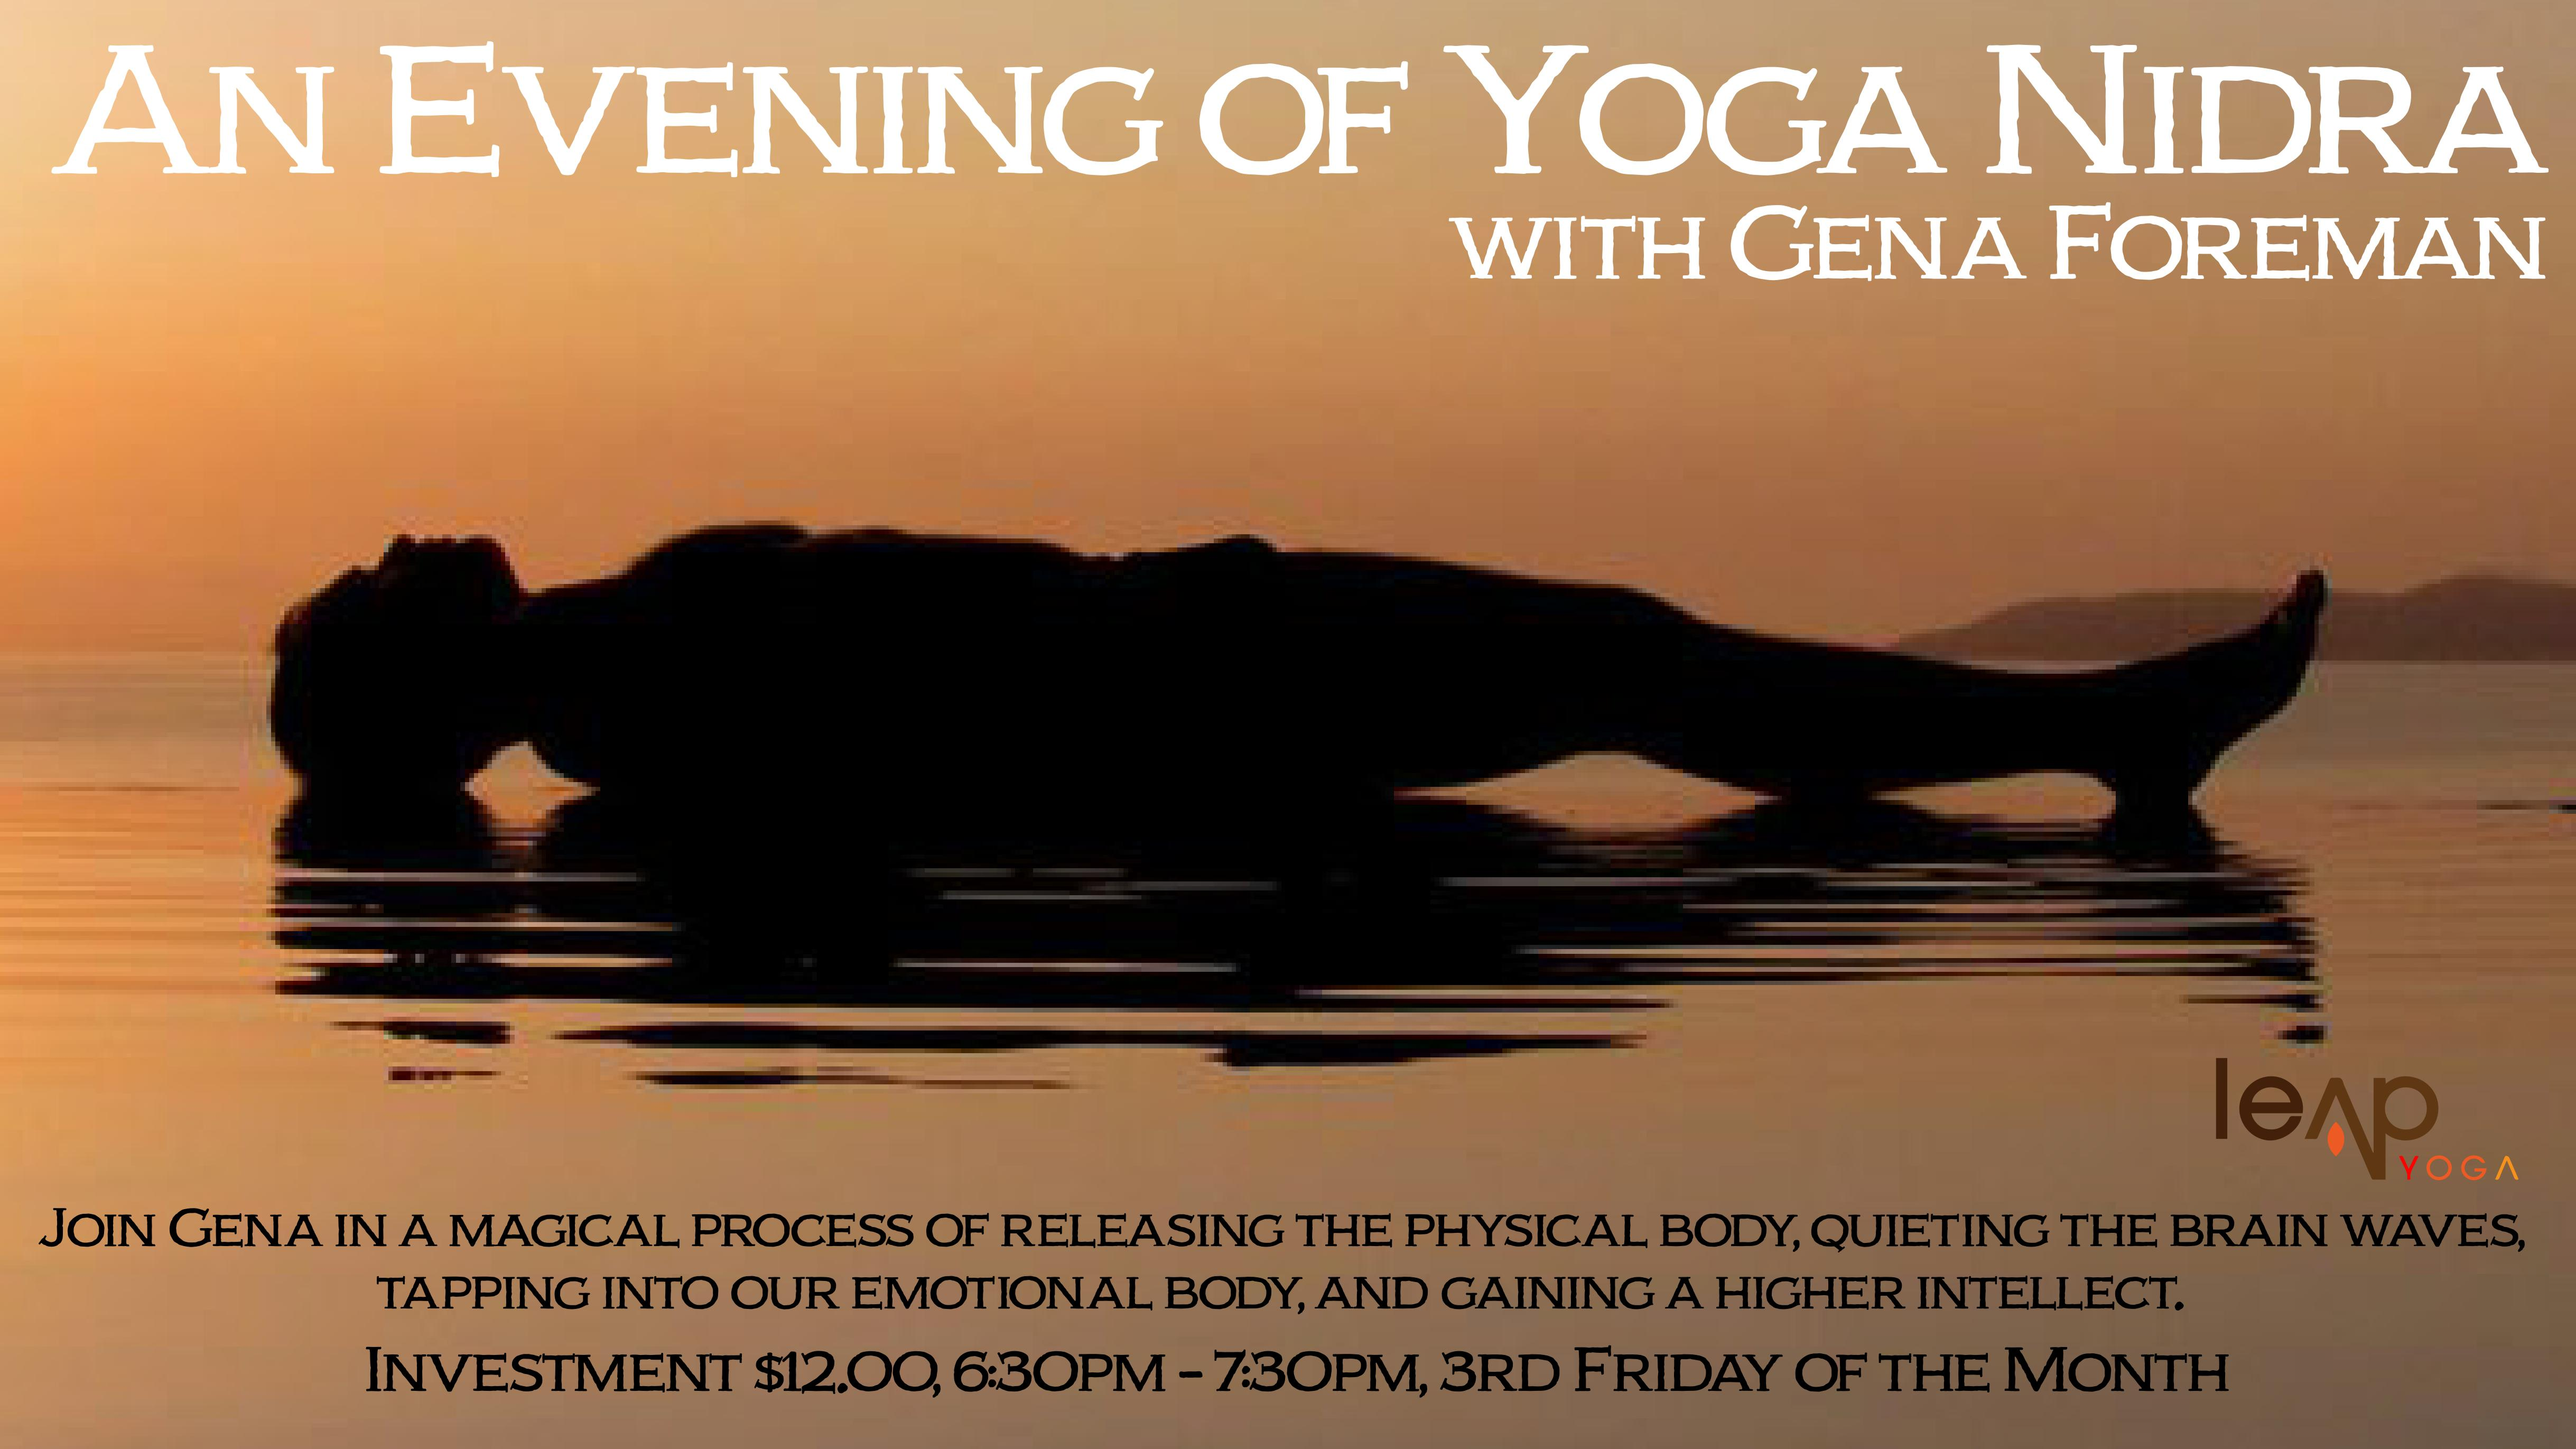 An Evening Of Yoga Nidra Guided By Gena Foreman